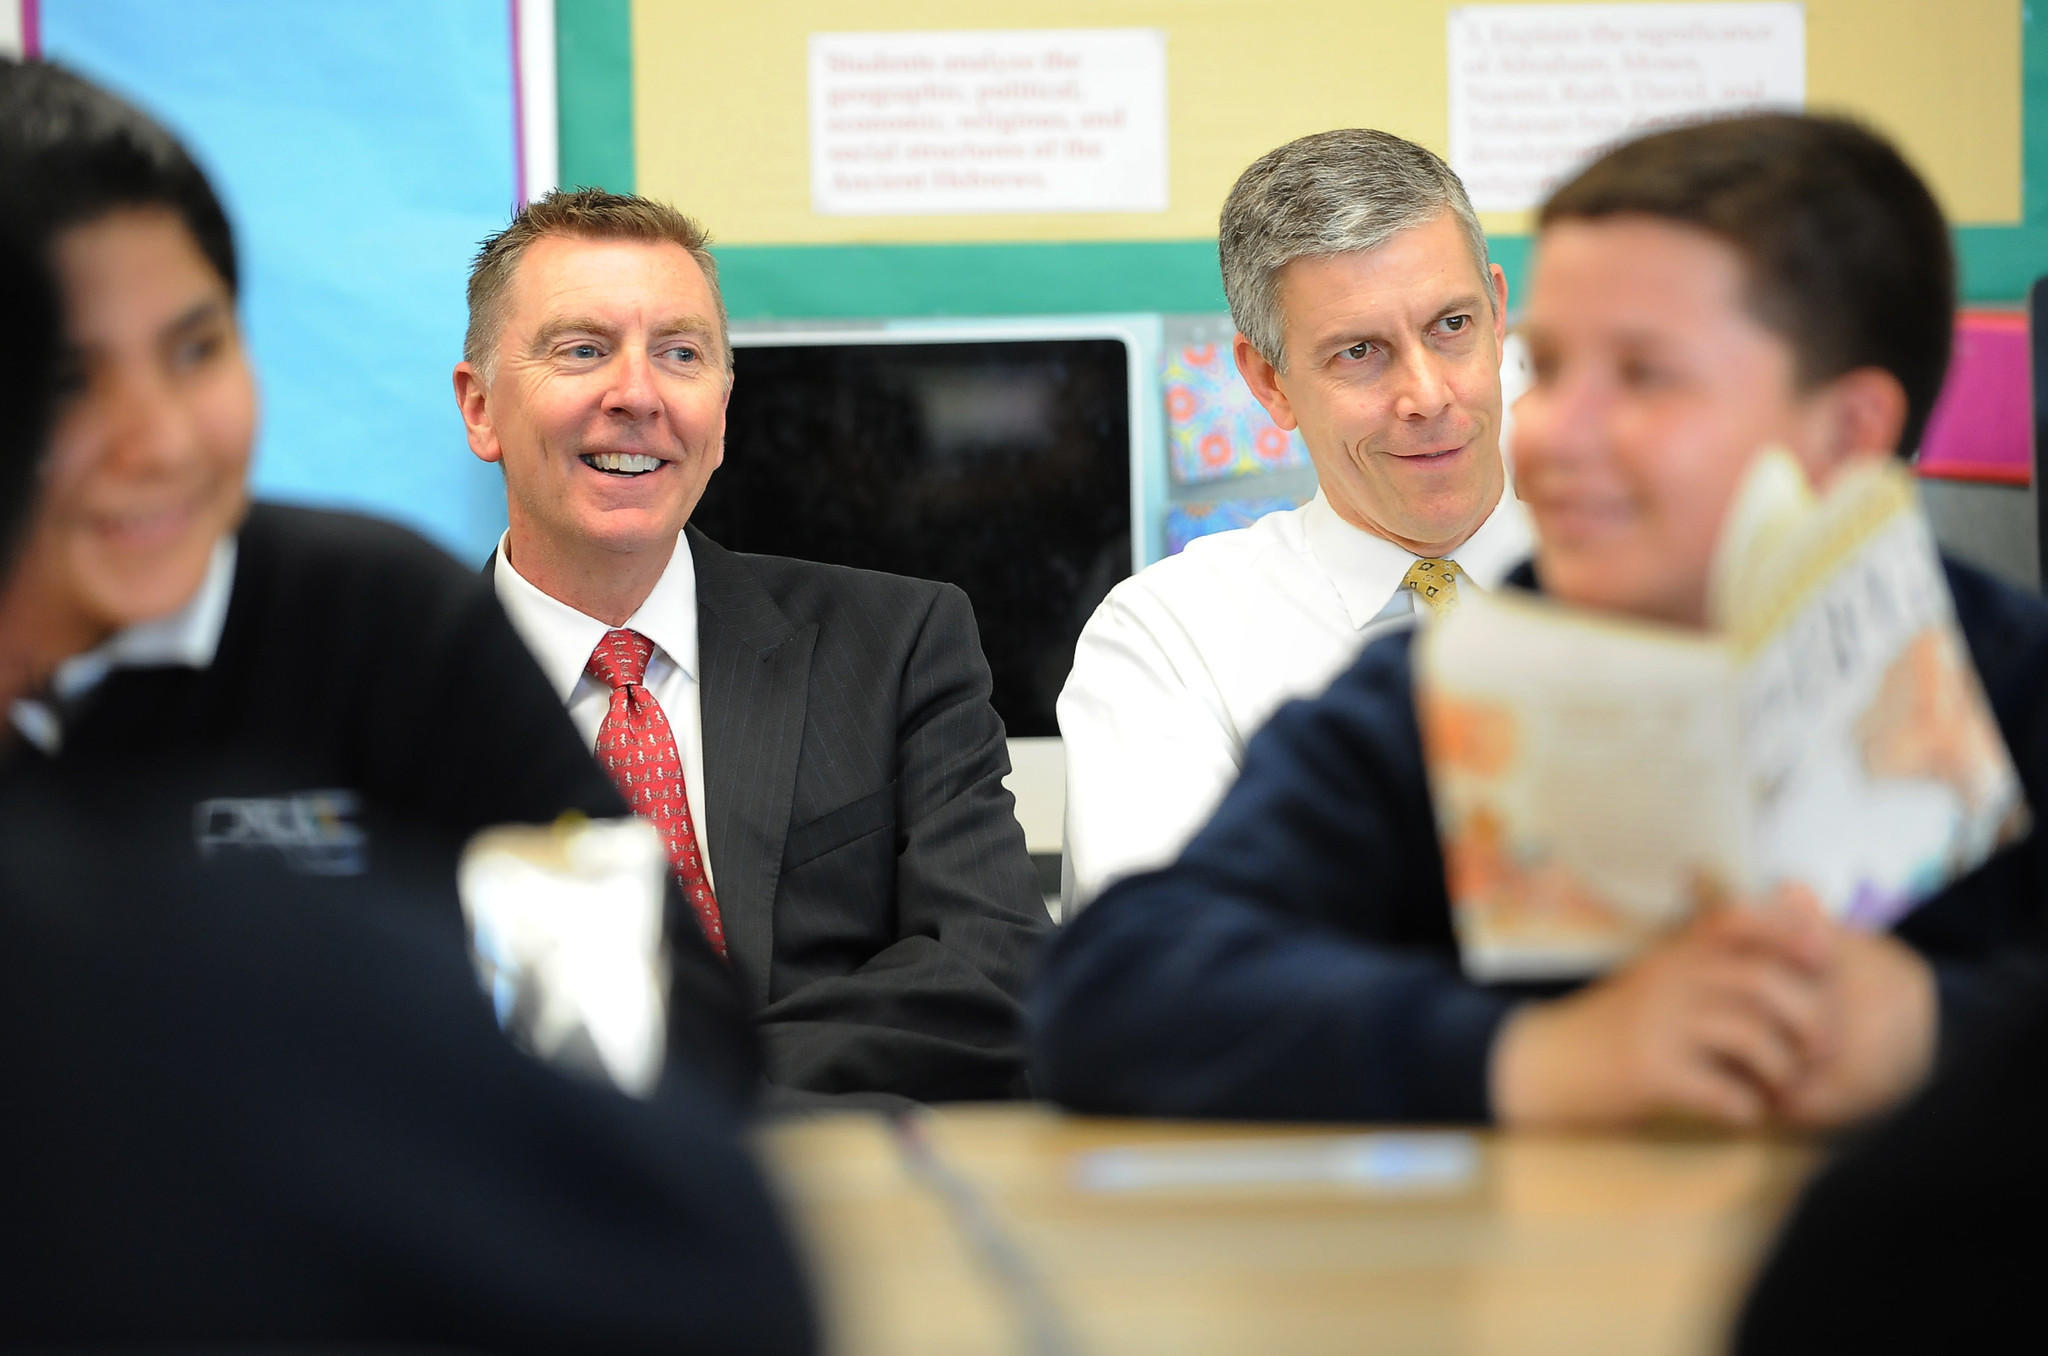 L.A. Unified Superintendent John Deasy, rear left, sits beside U.S. Secratary of Education Arne Duncan in a reading class at Dr. Julian Nava Learning Academy in Los Angeles.